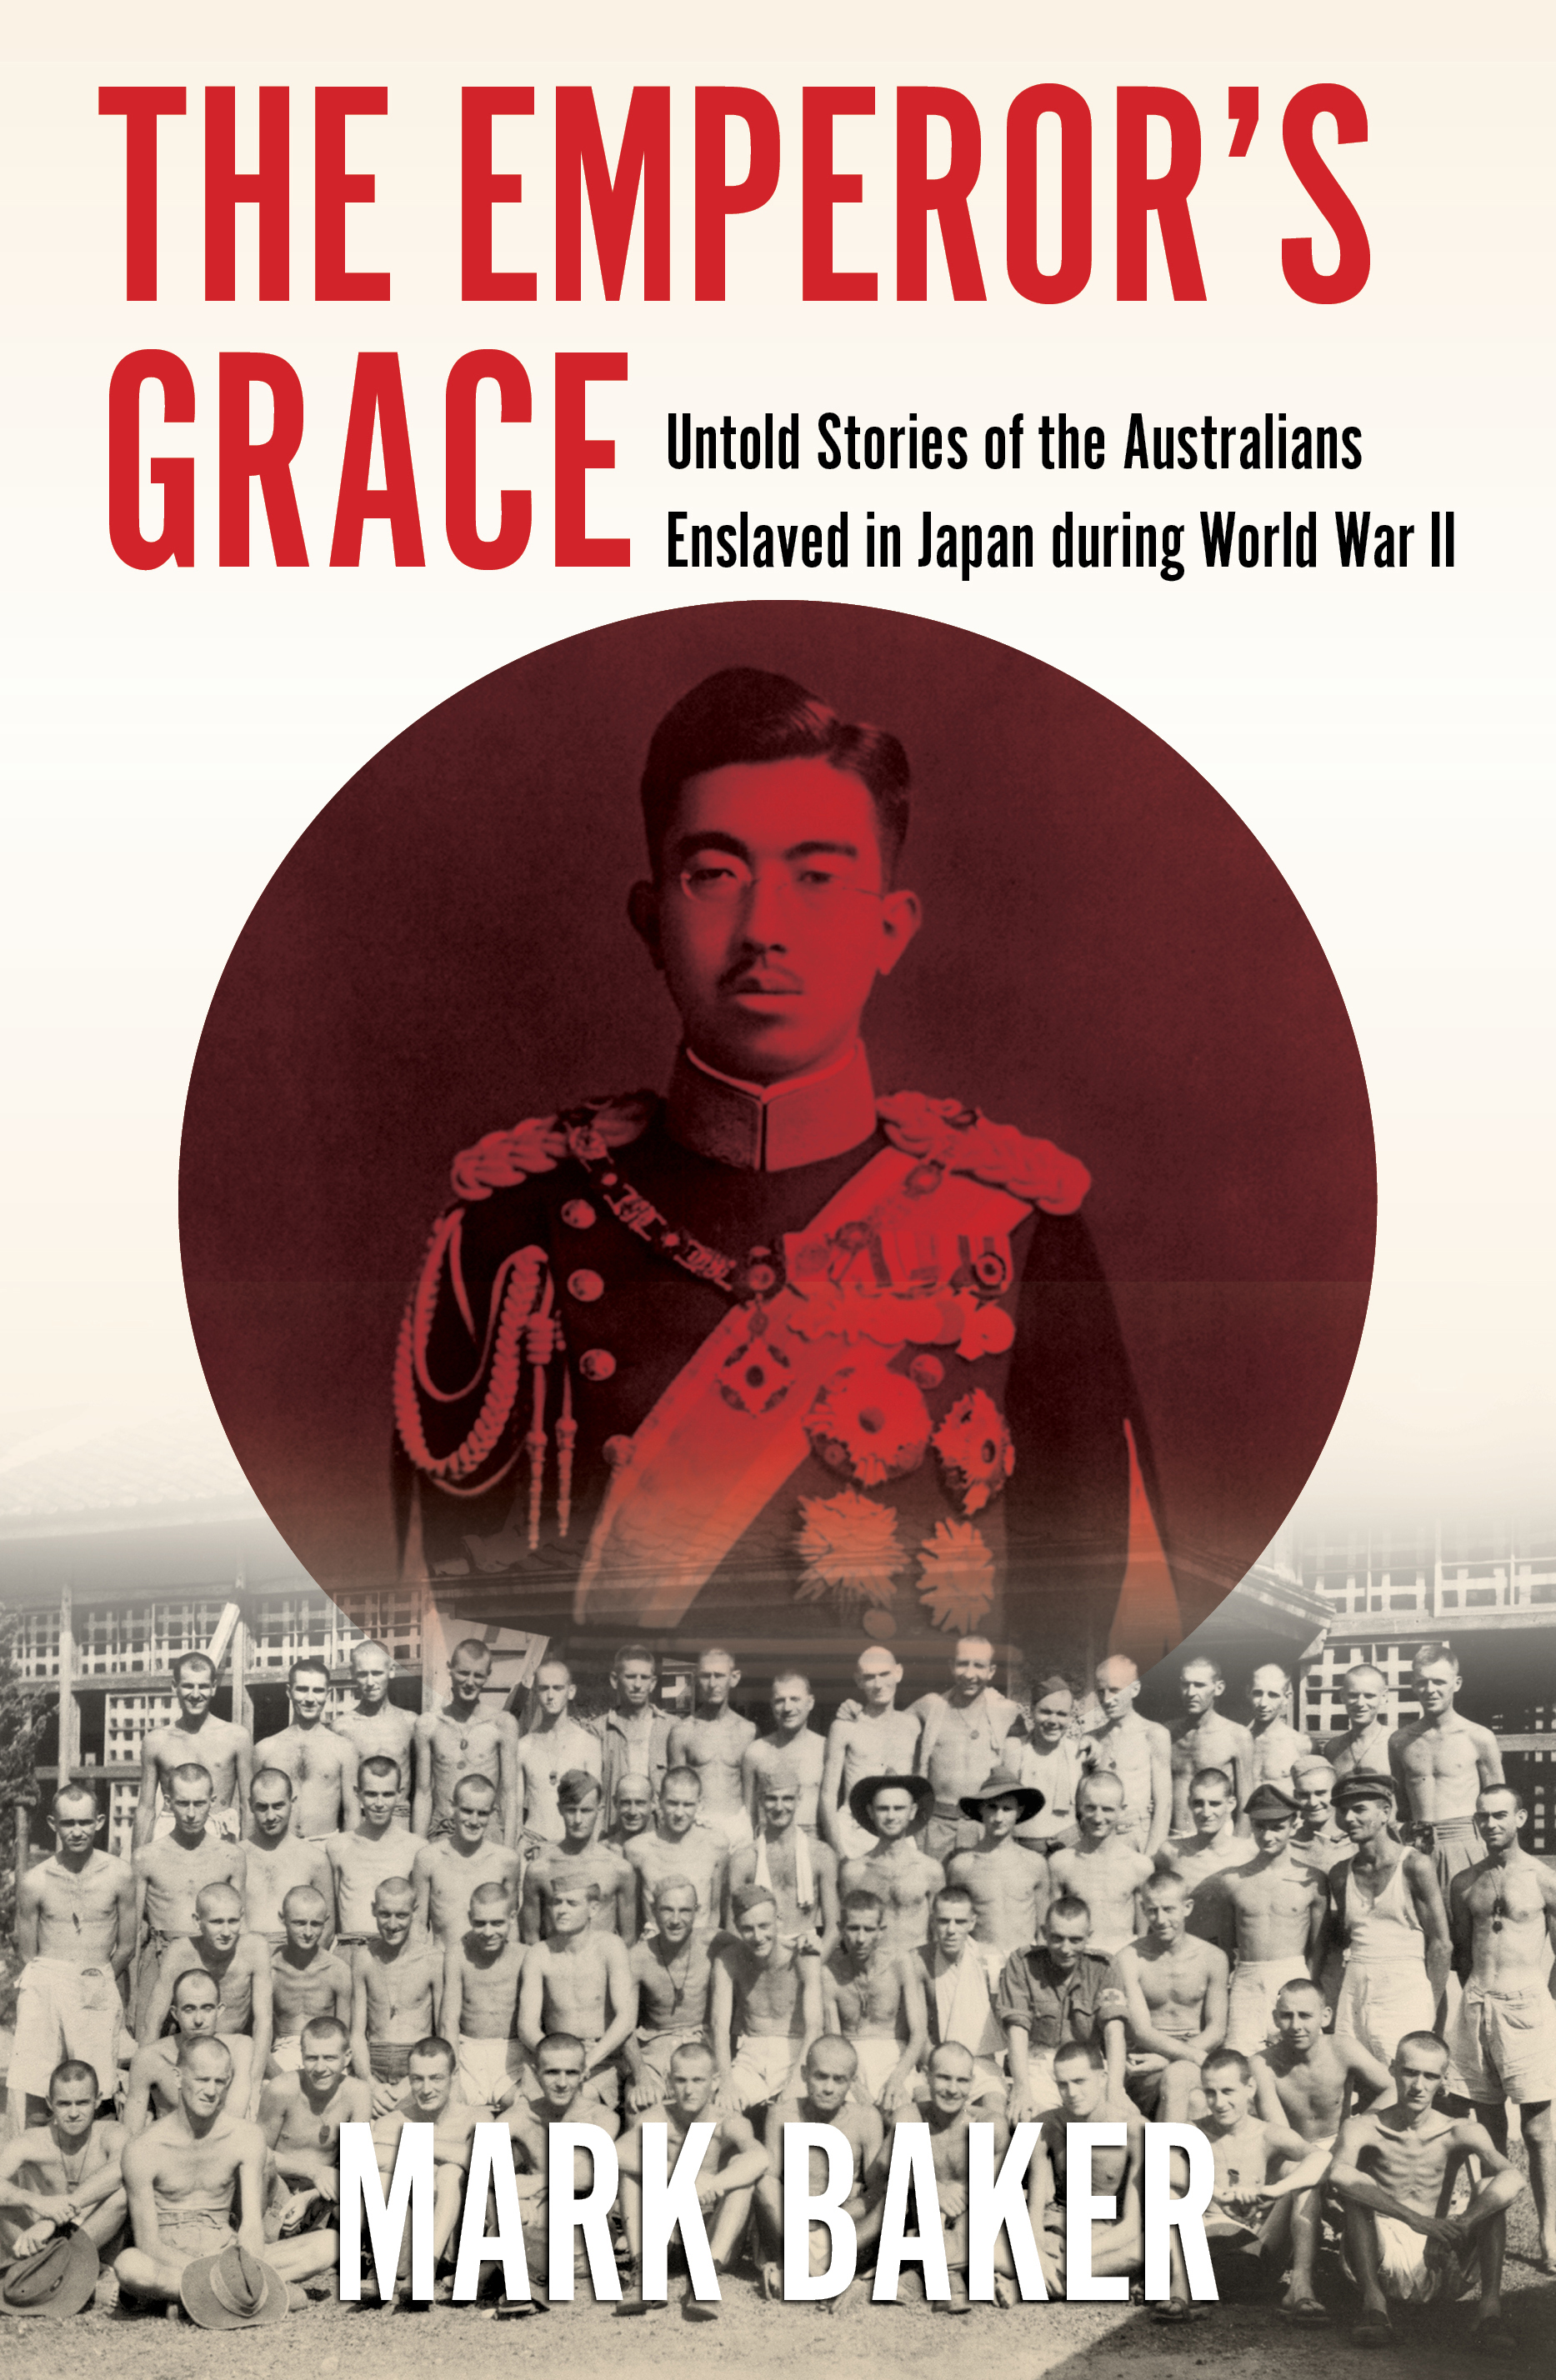 The Emperor's Grace: Untold Stories of the Australians Enslaved in Japan During World War II, by Mark Baker